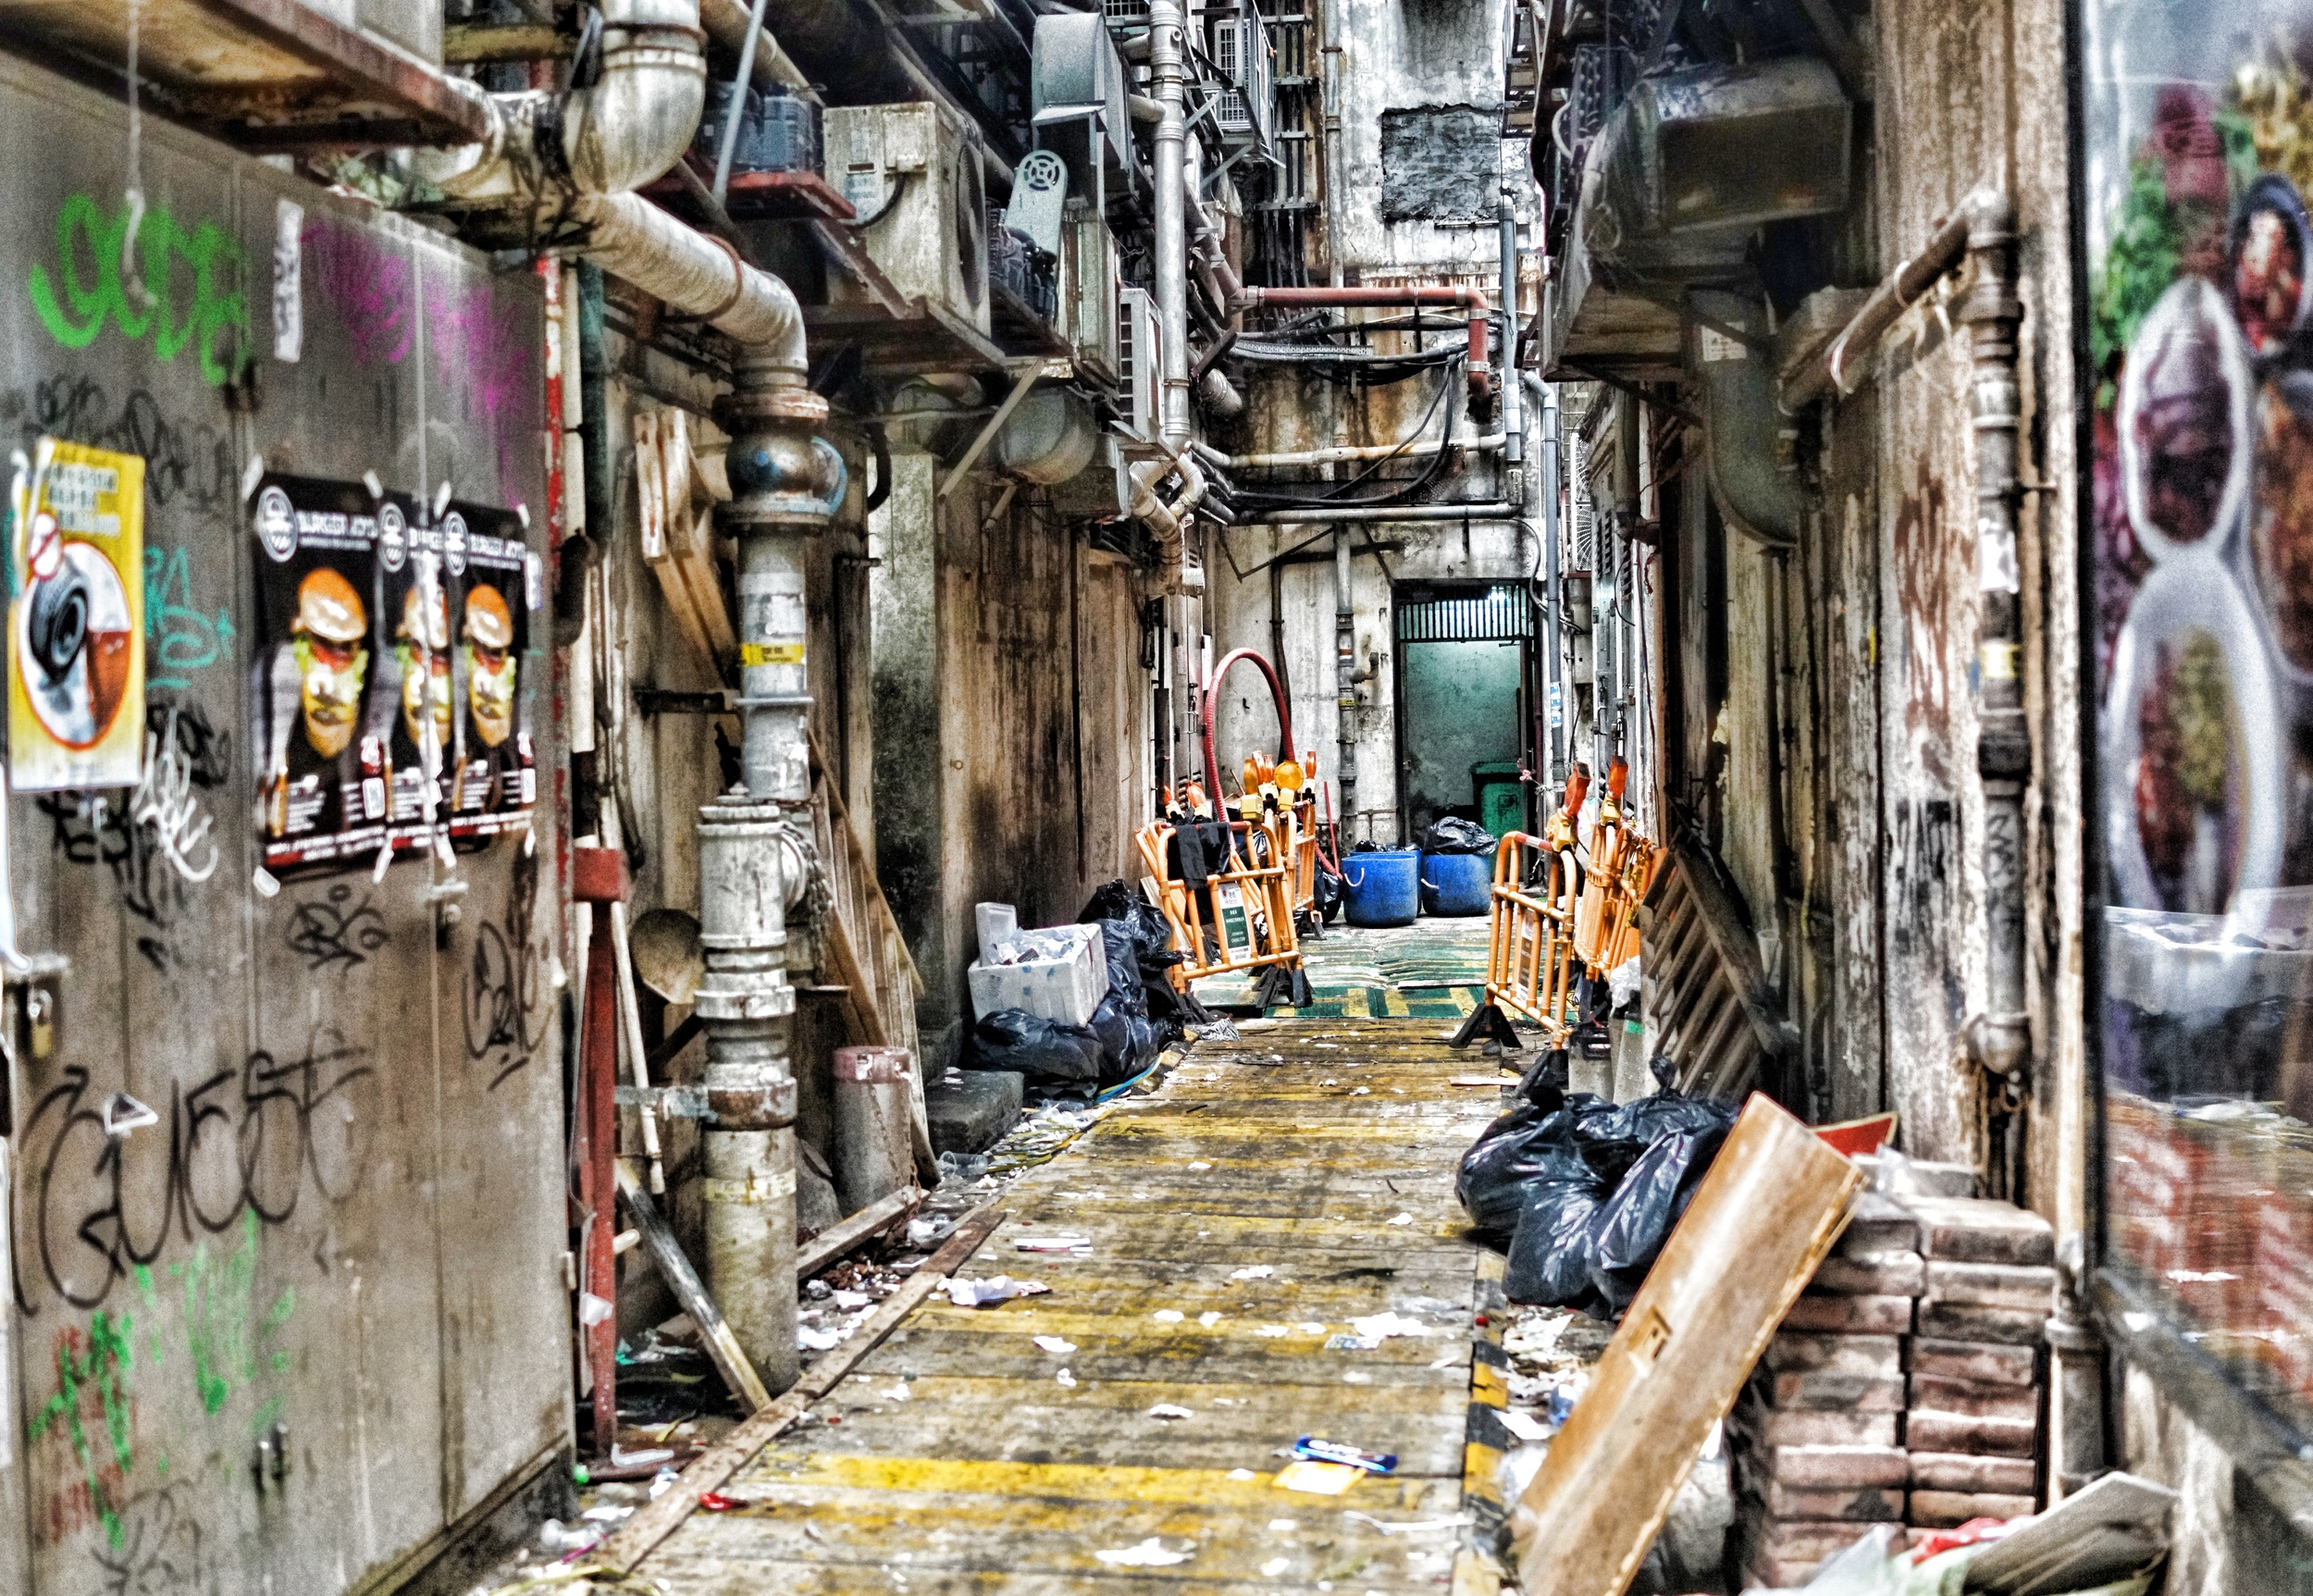 A typical dodgy alley in Hong Kong but of course, perfectly safe! -